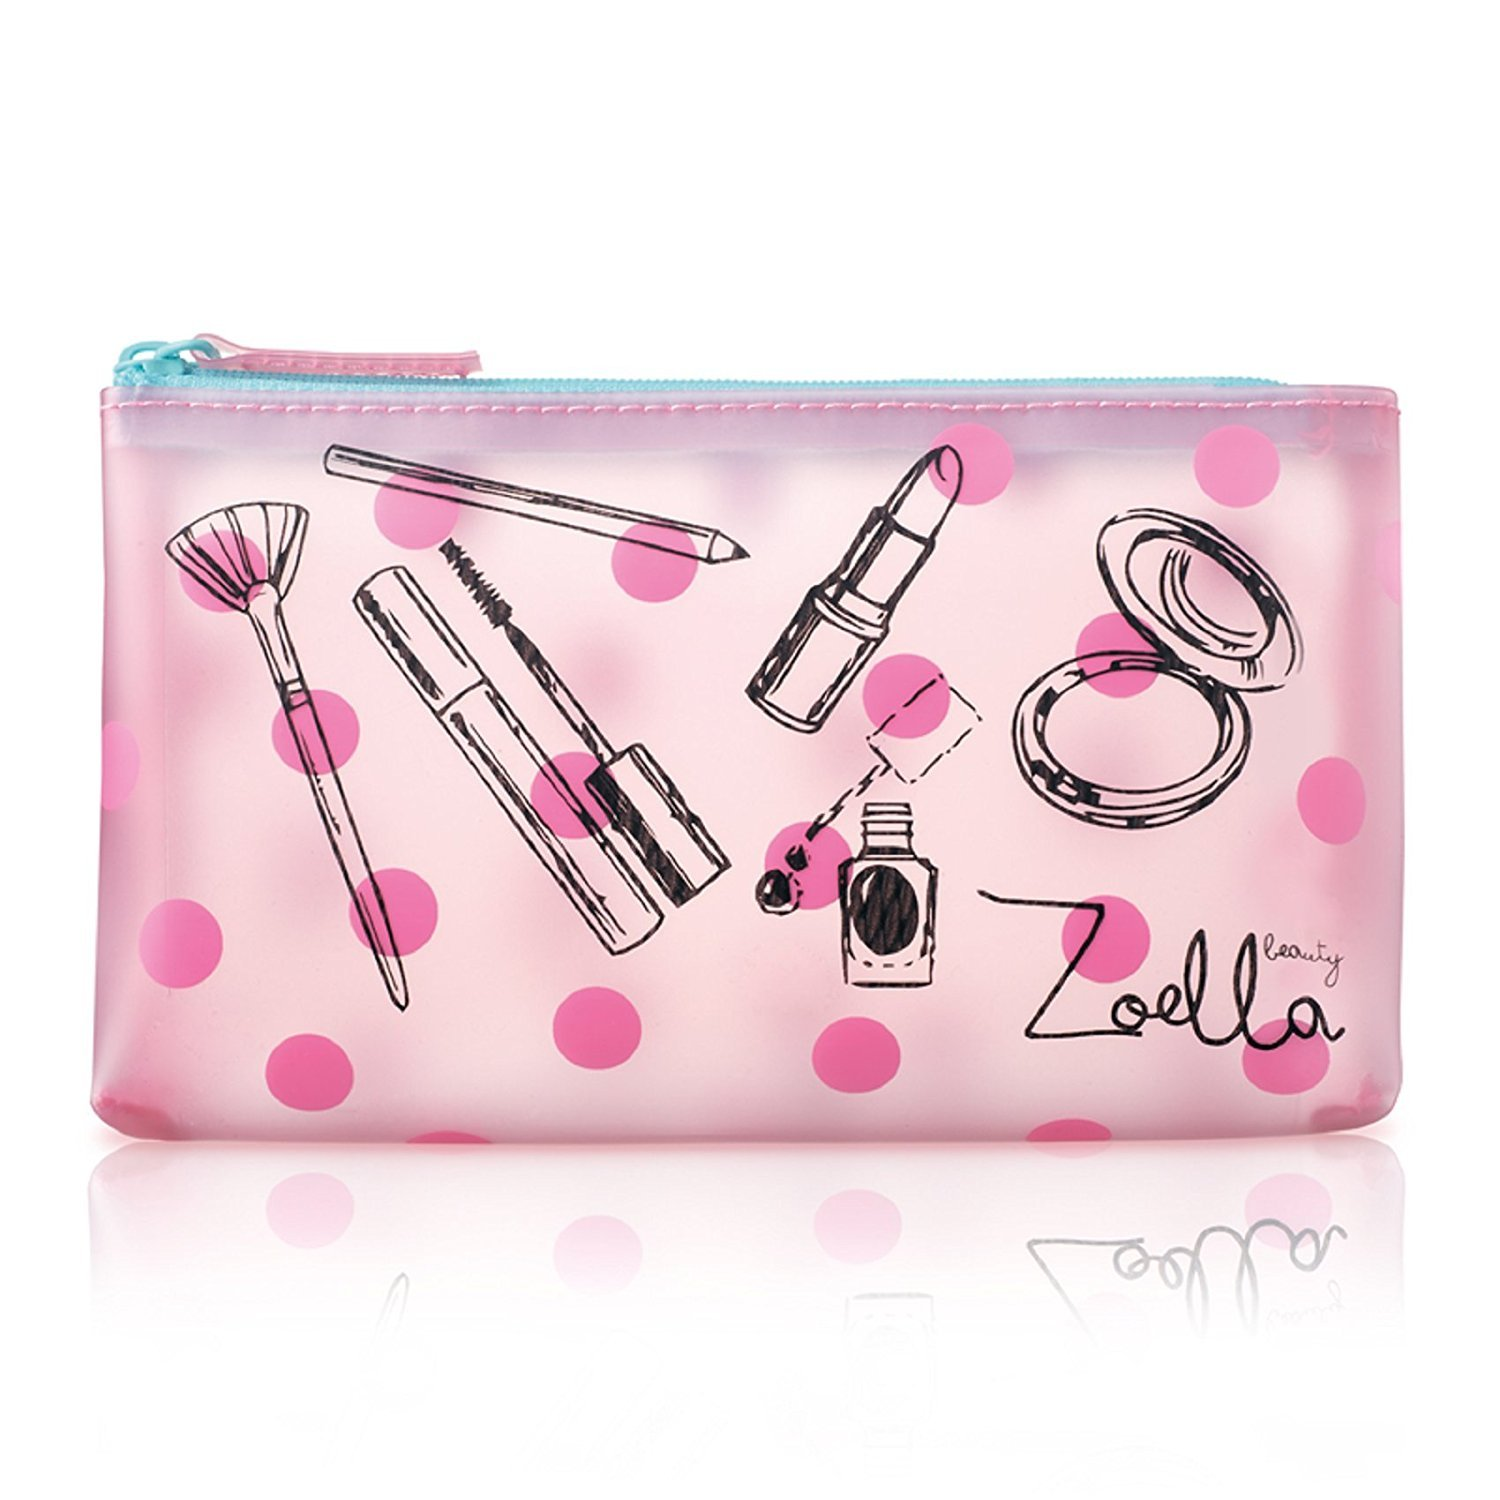 39dd47222ab7 Zoella Beauty Pink Frosted Cosmetic / Coin Purse / Make Up Bag